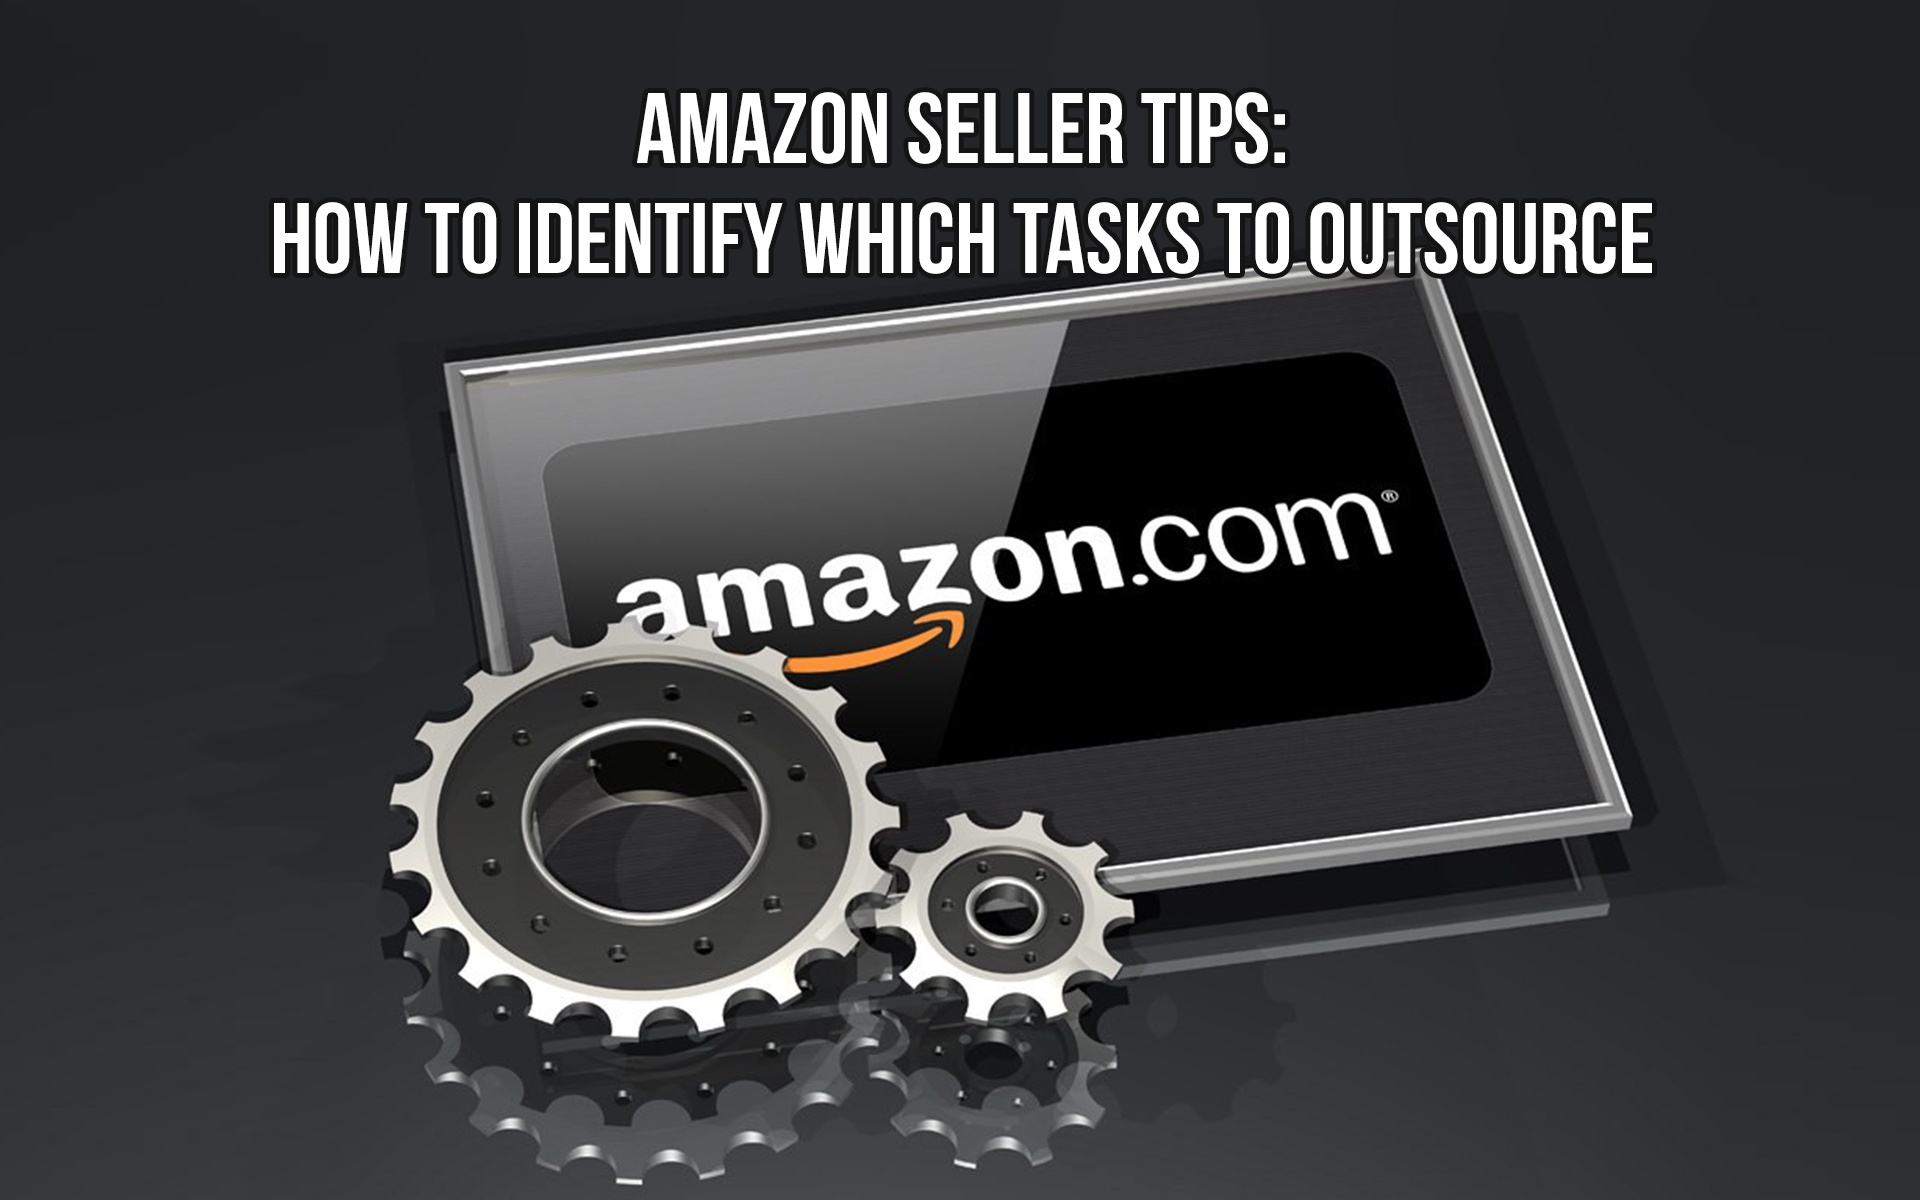 Amazon Seller Tips: How to Identify which Tasks to Outsource